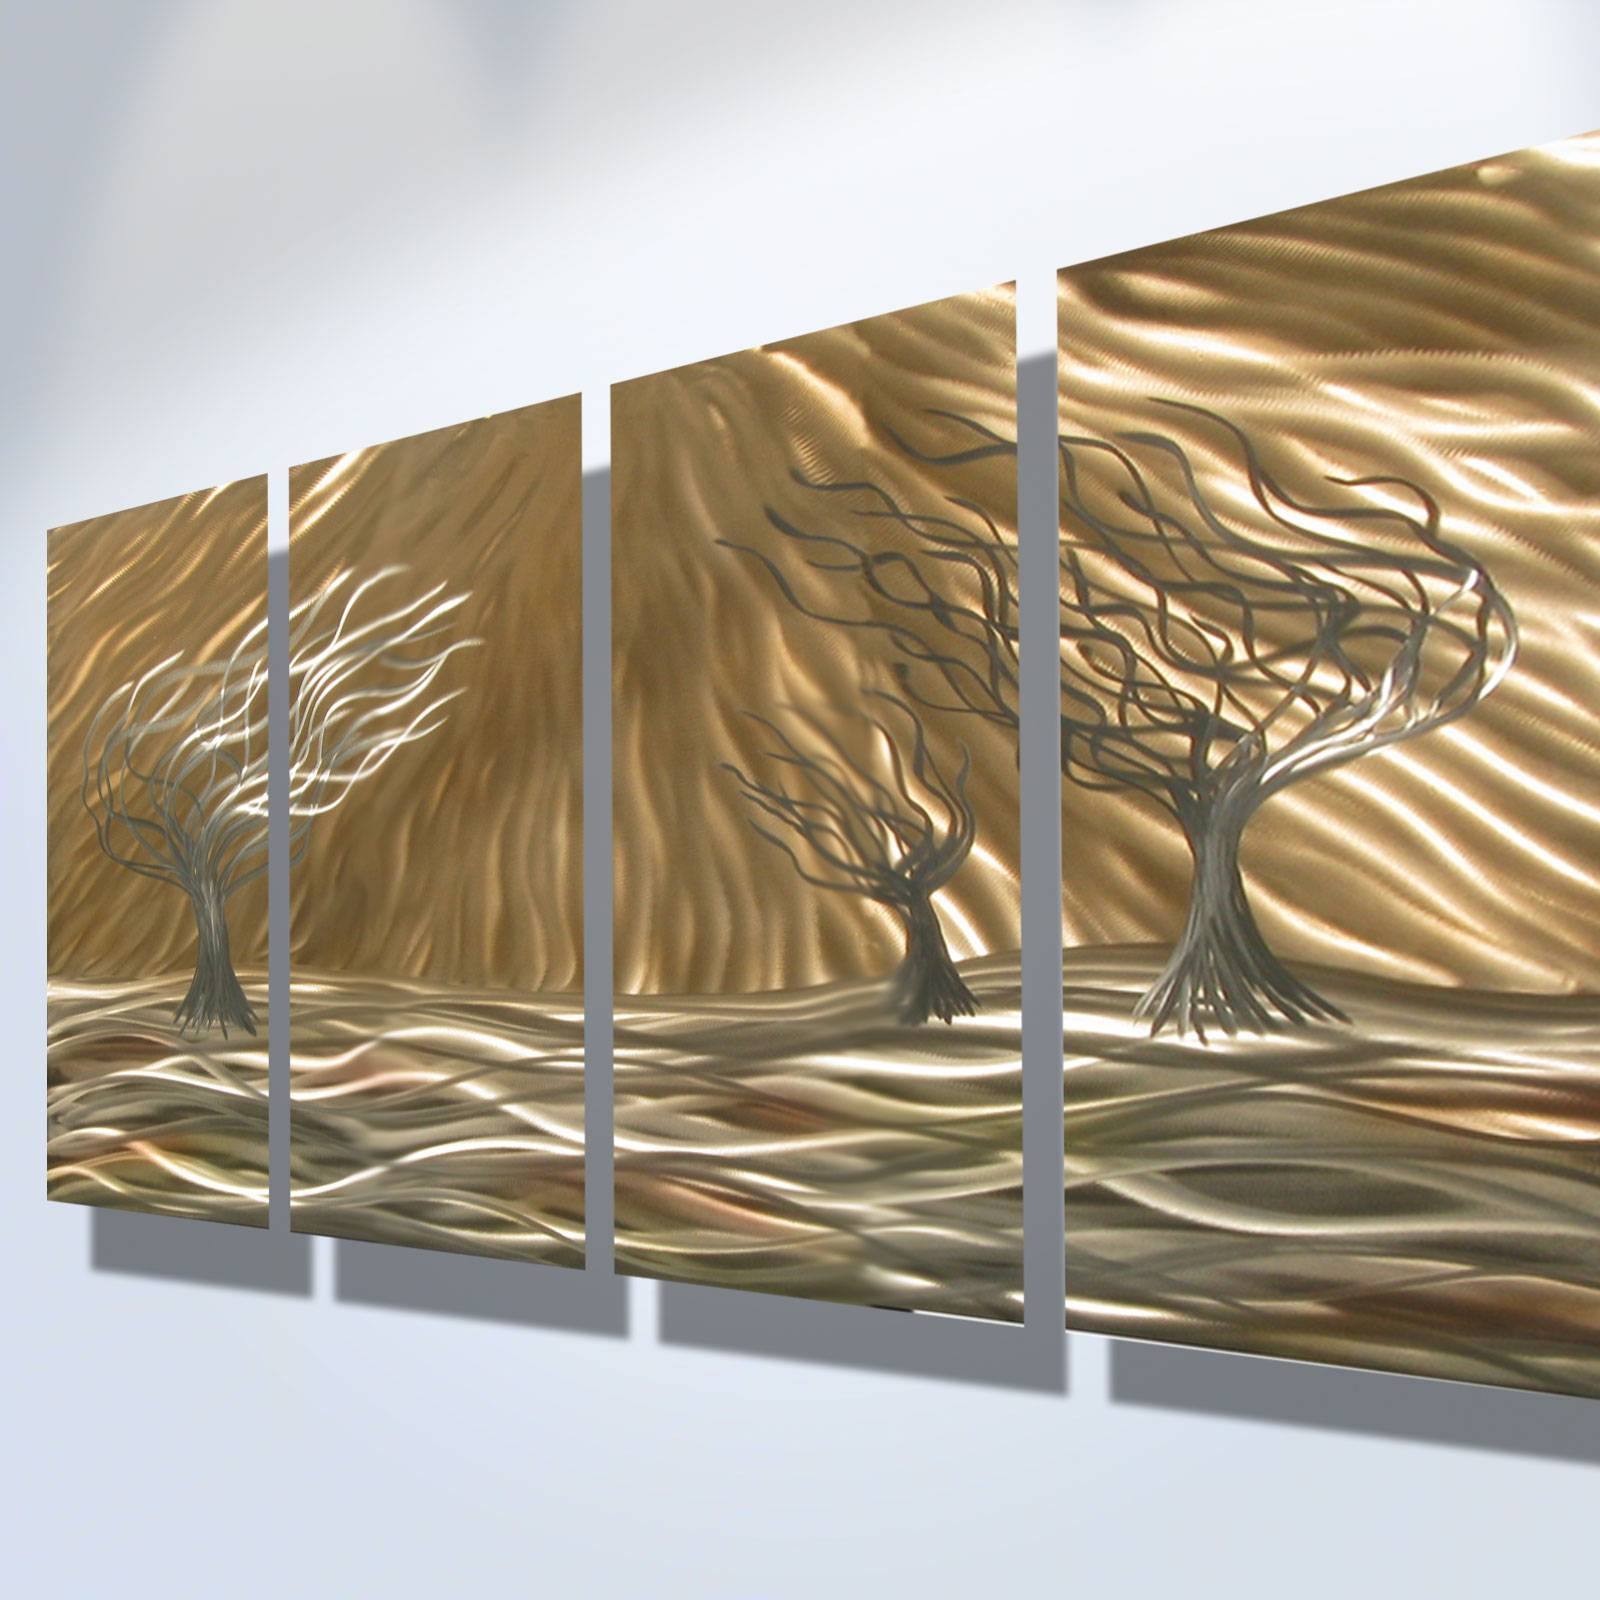 Stupendous Metal Wall Art Panels Outdoor Mgctlbxnmzp Mgctlbxv For Latest Ash Carl Metal Wall Art (View 22 of 30)